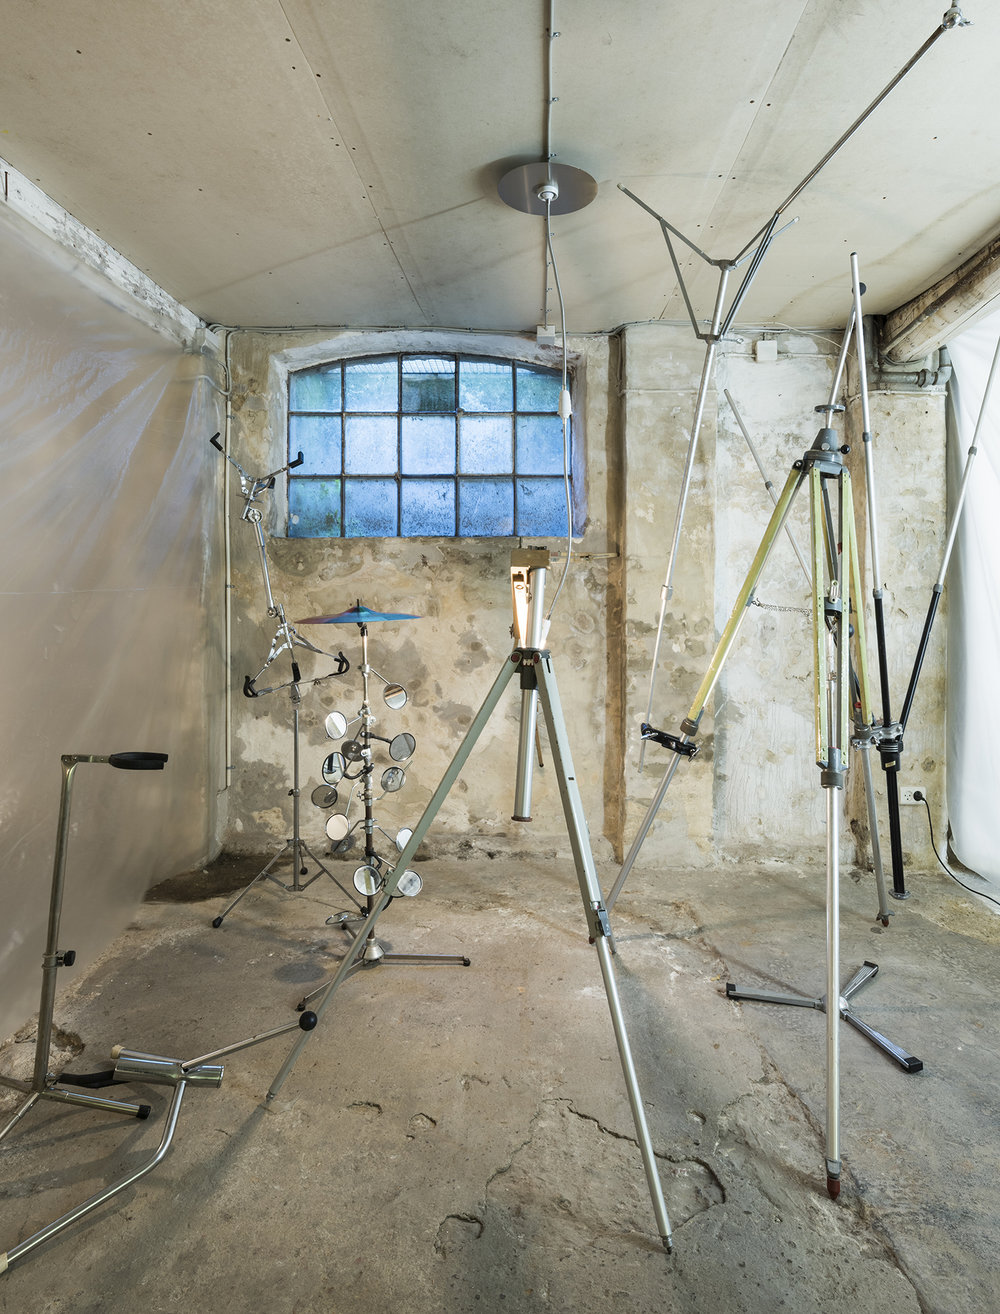 "Room 11: Orgy Room | Andreas Schlaegel ""Clusterfuck"", 2017 (various drums and photo stands, easel). Photo by David Stjernholm."